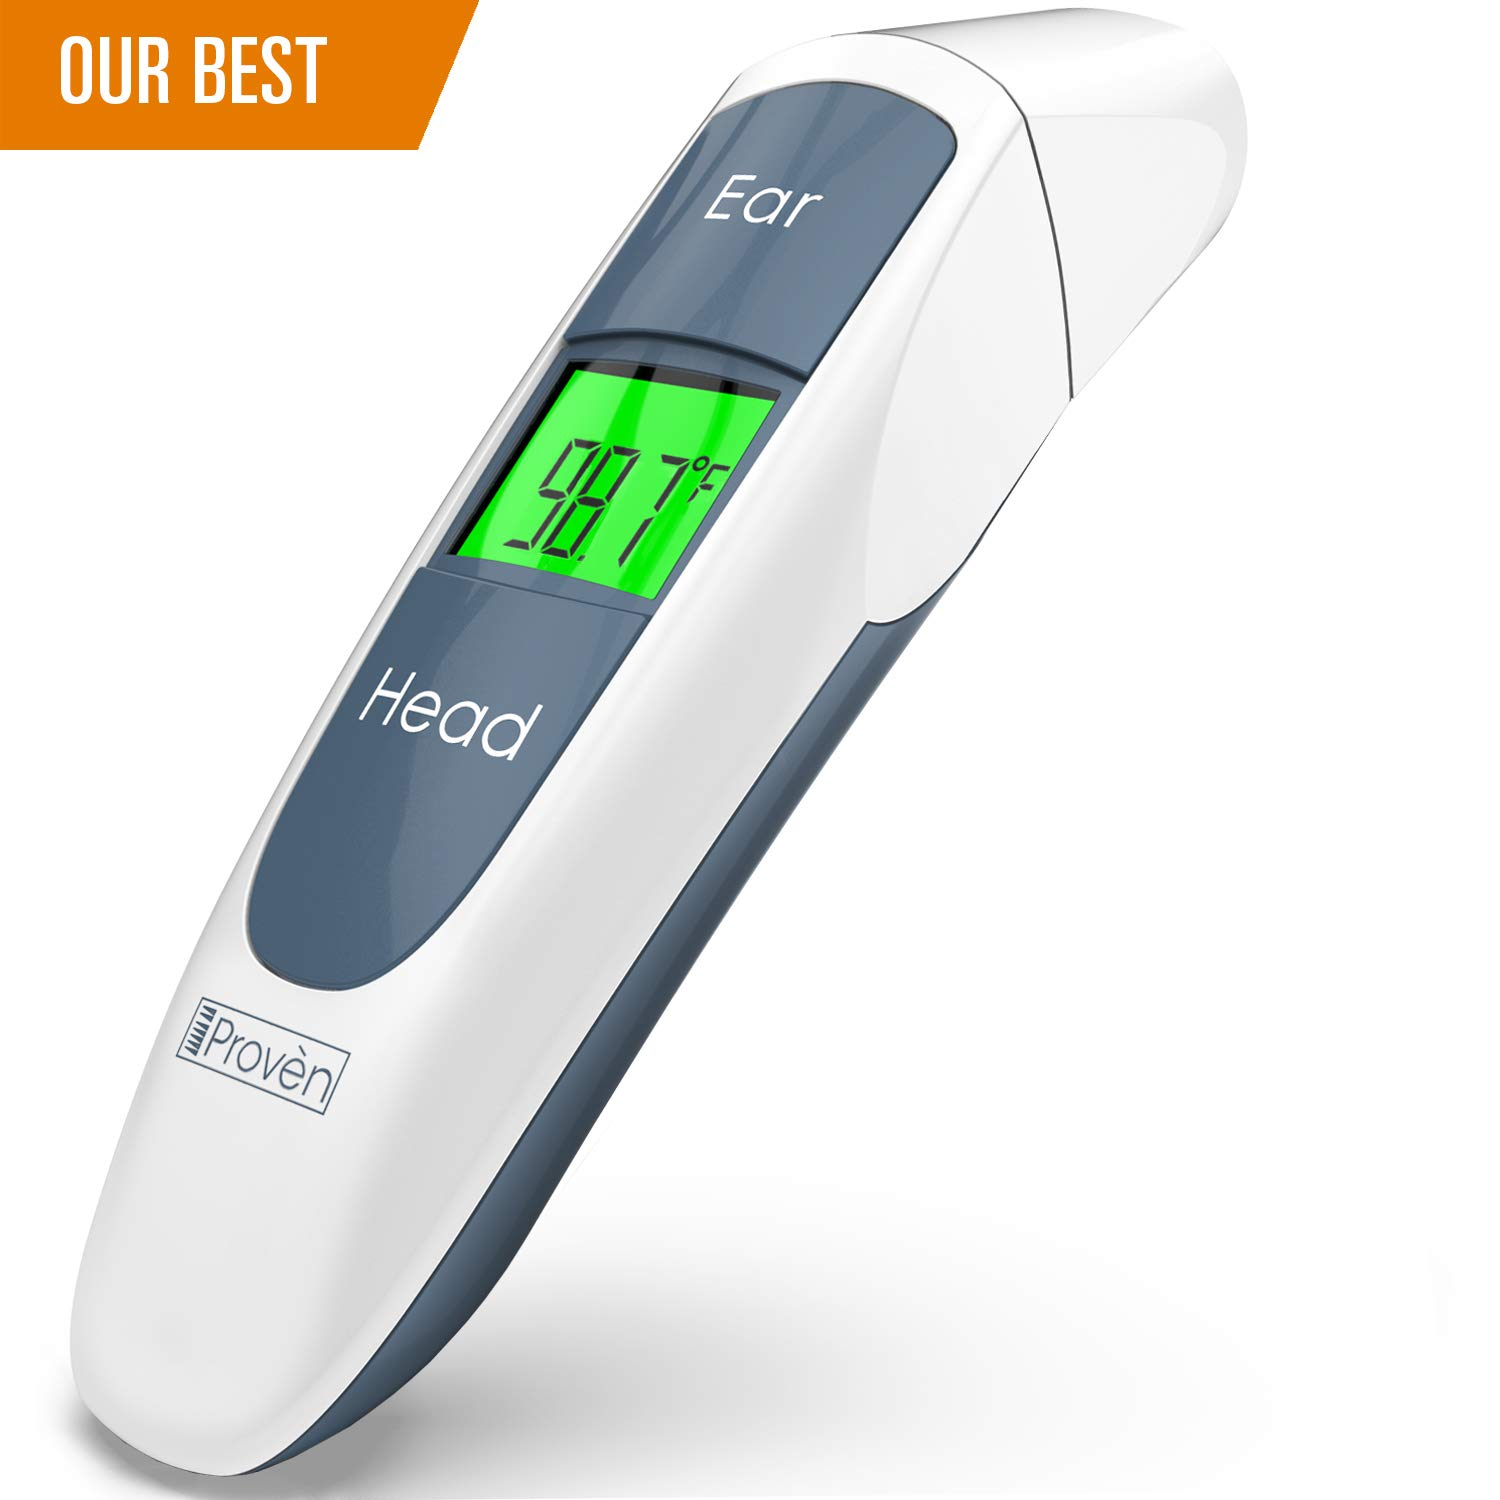 Best Medical Digital Ear Thermometer (Termometro) with Temporal Forehead Function - for Baby, Infant and Kids - Upgraded Tympanic Fever Scan Lens Technology for Unmatched Accuracy - New 2018 DMT-316